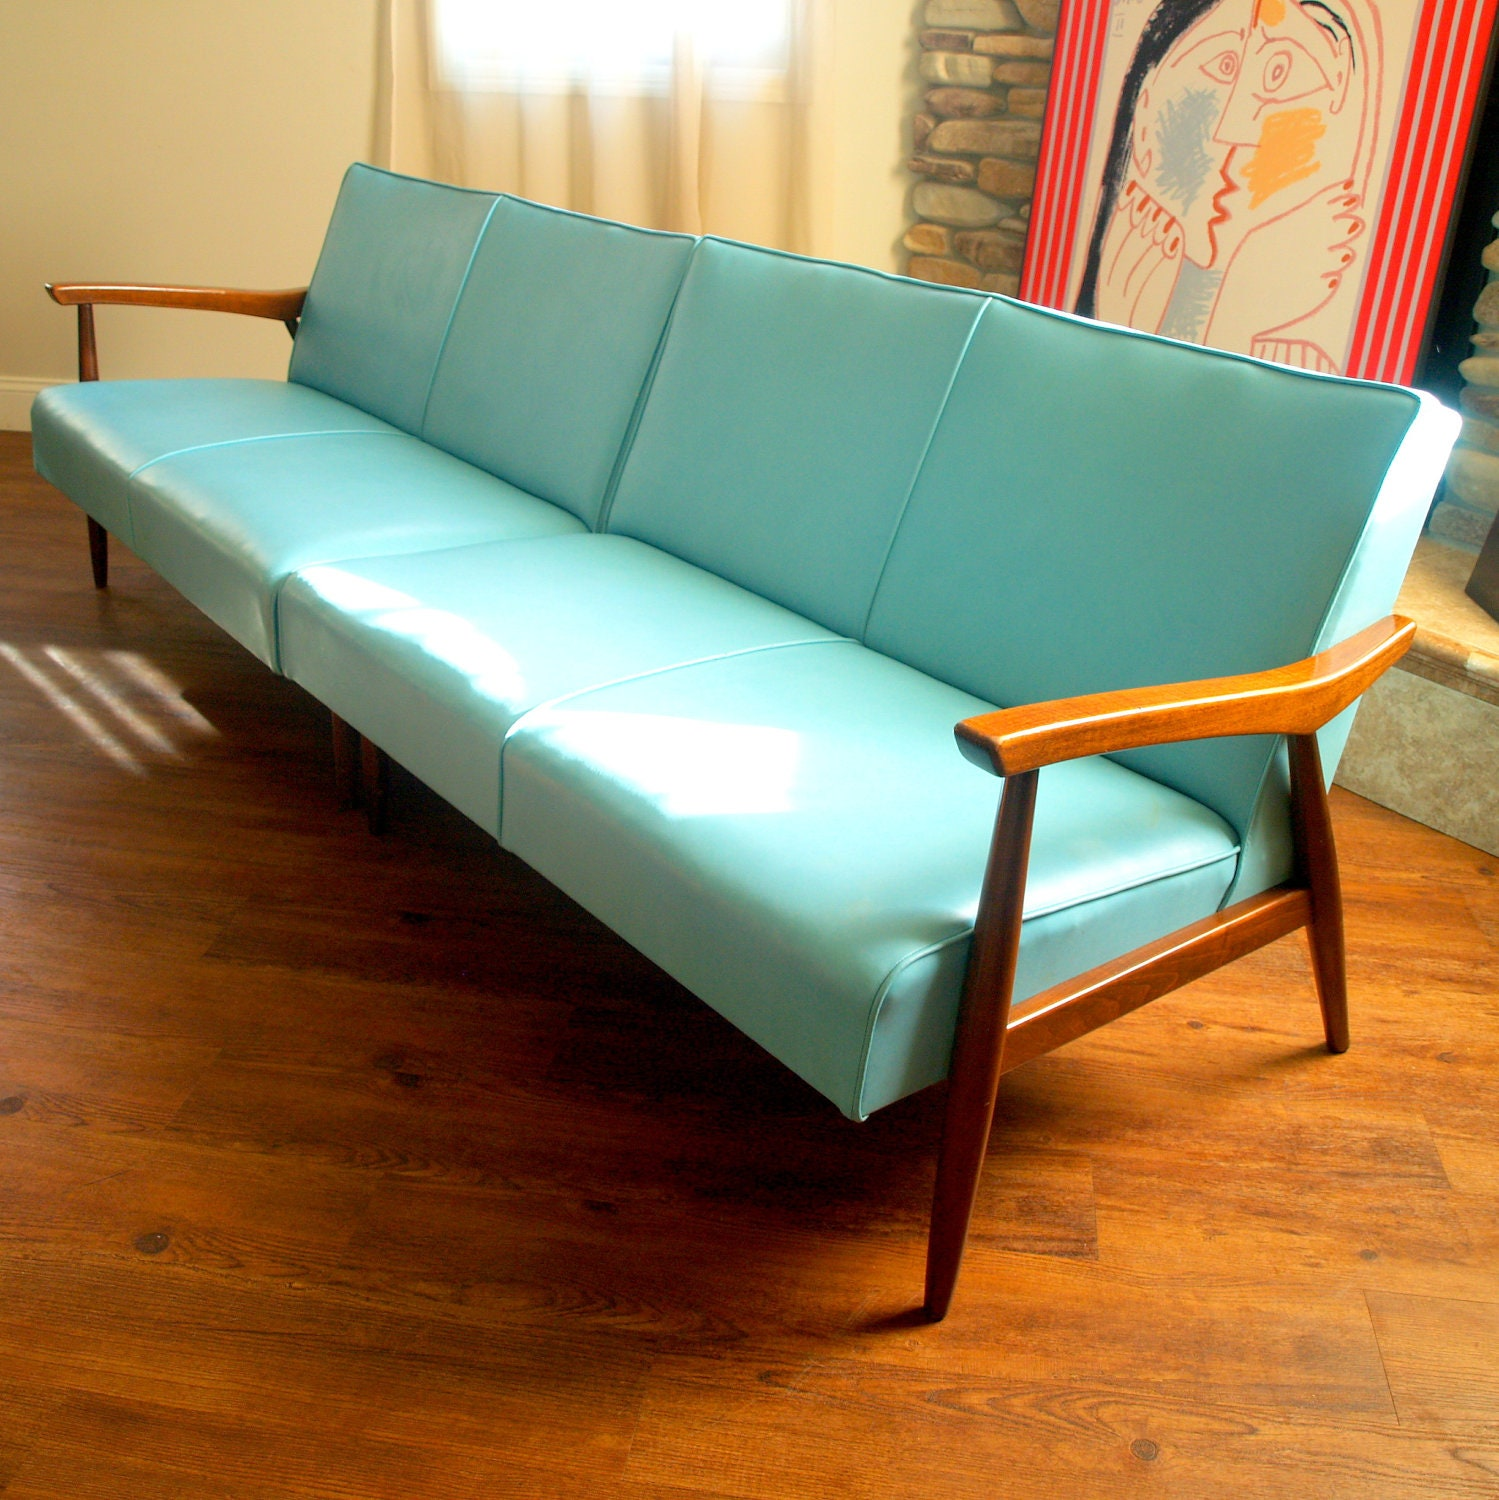 50s VINTAGE DANISH MODERN Sectional Sofa By ACESFINDSVINTAGE